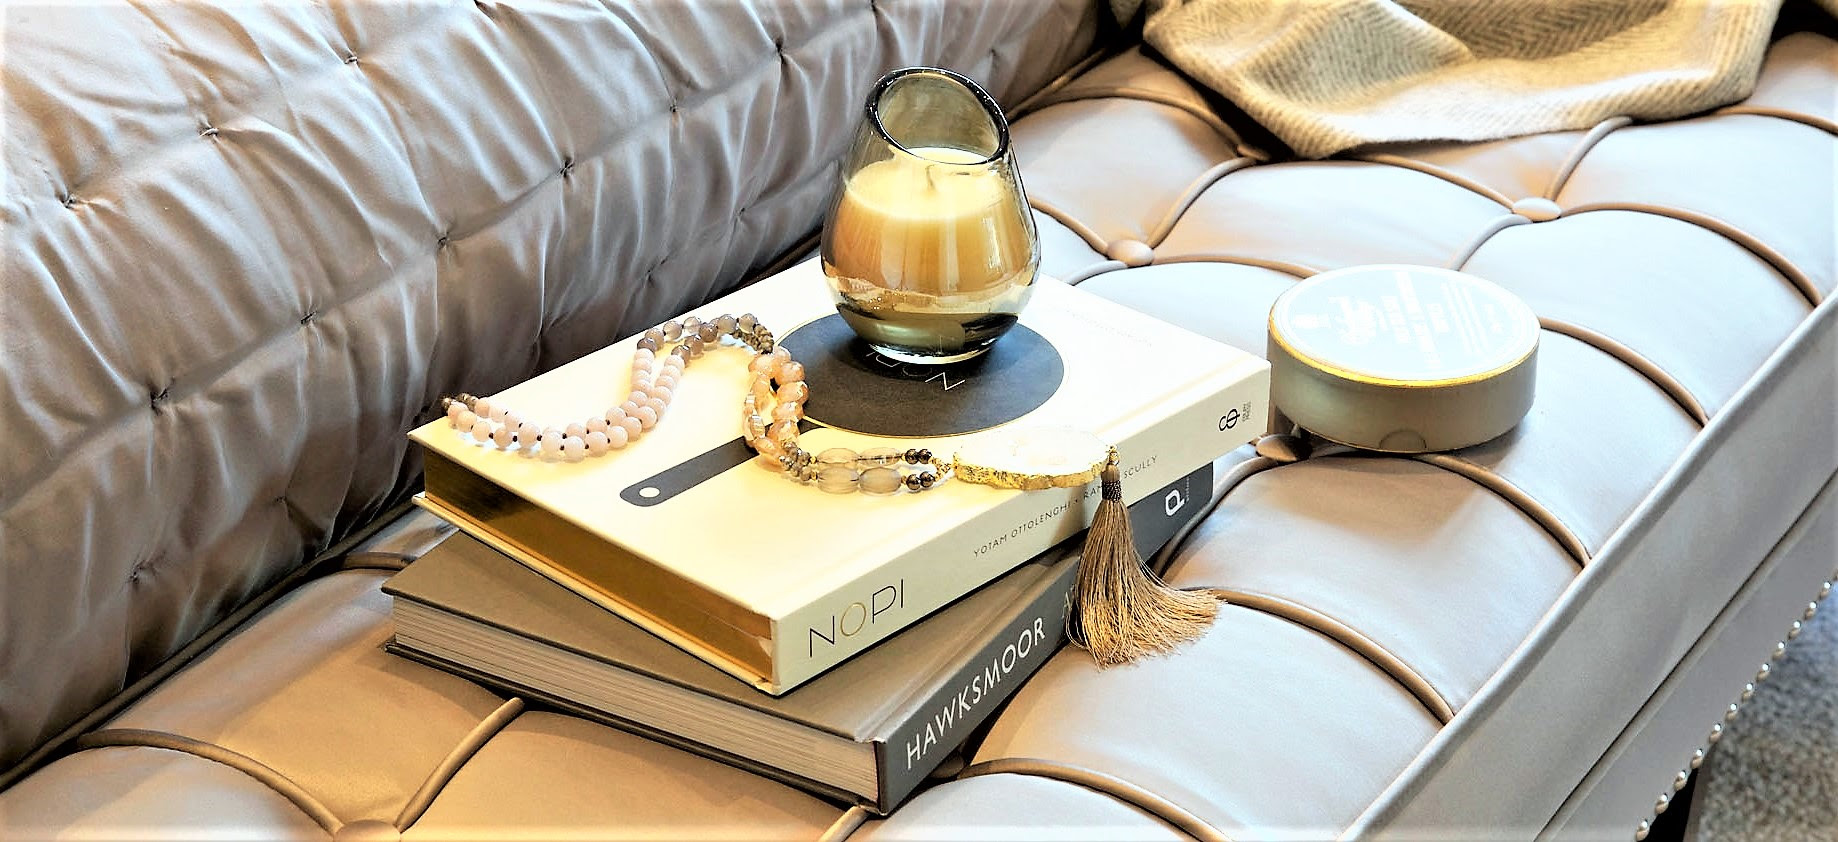 HOW TO STYLE WITH THE COFFEE TABLE BOOK - GIRL ABOUT HOUSE